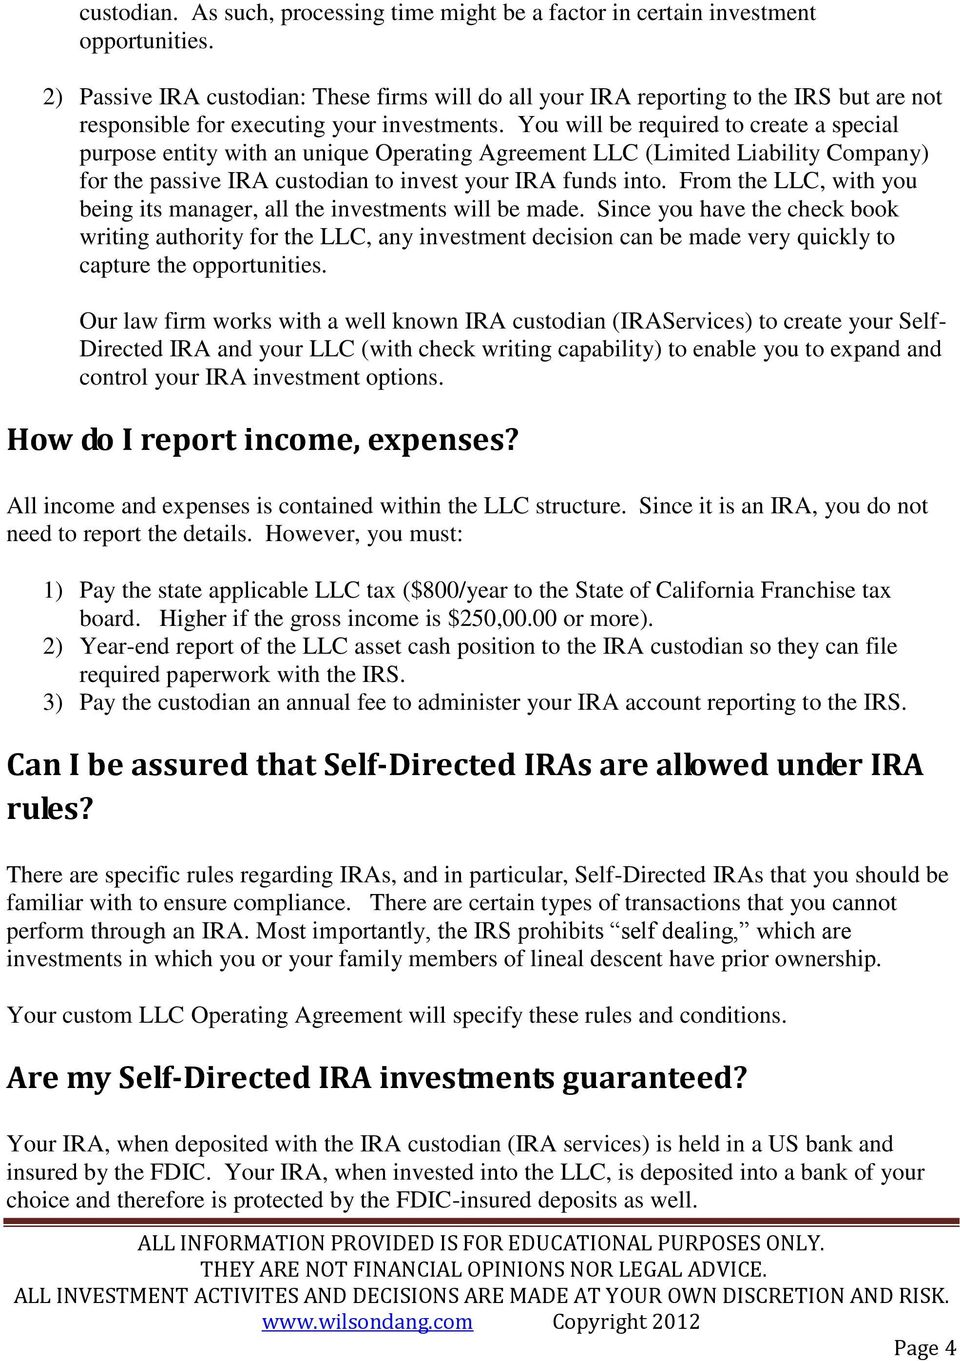 You will be required to create a special purpose entity with an unique Operating Agreement LLC (Limited Liability Company) for the passive IRA custodian to invest your IRA funds into.